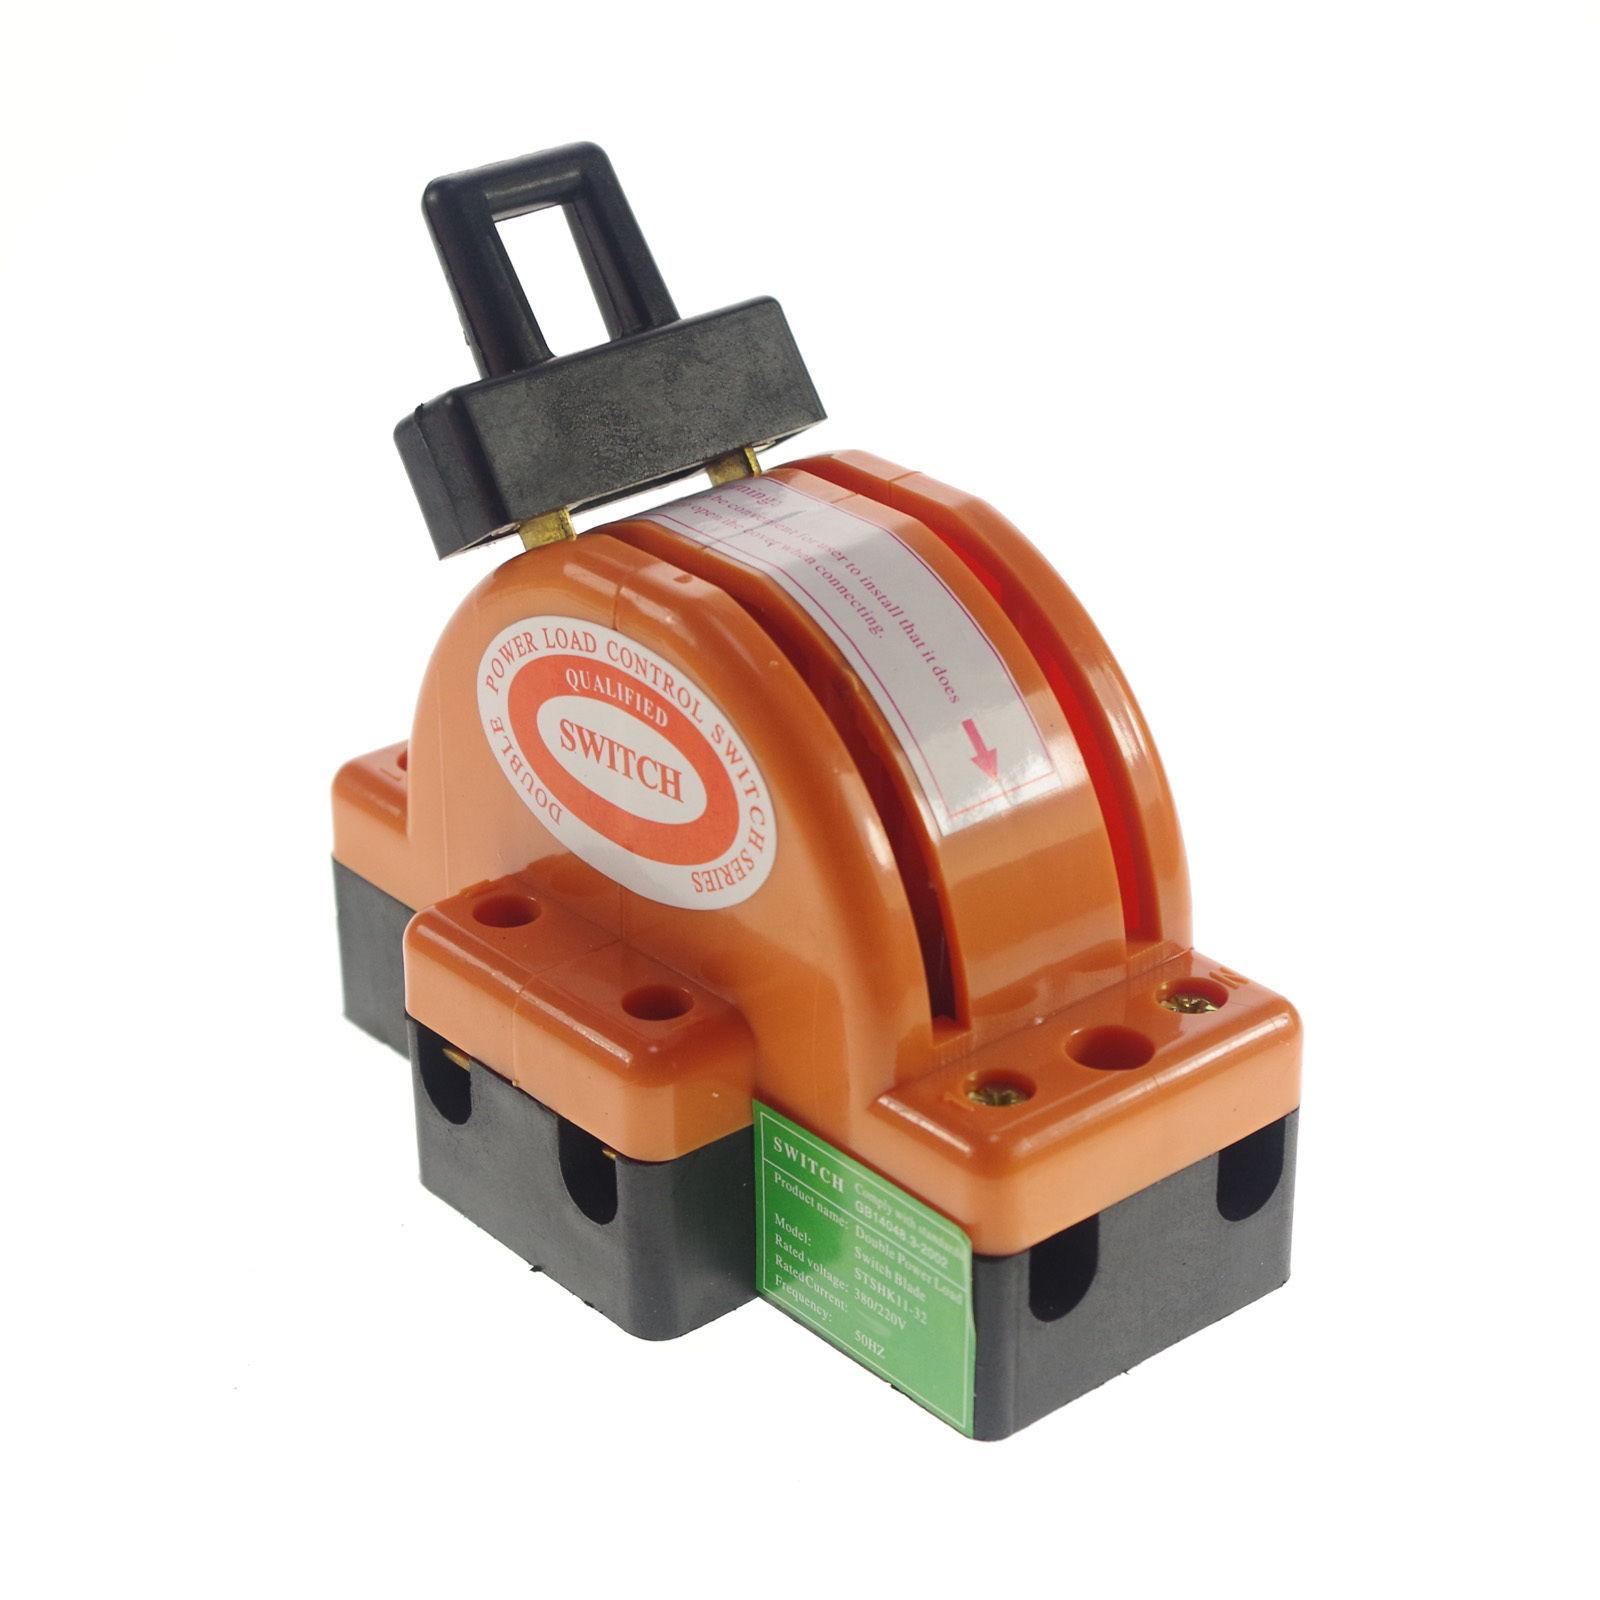 100a Two Pole Disconnect Double Throw Switch Circuit Breaker Backup Knife Fuse Box Residential 30a 220v 380v